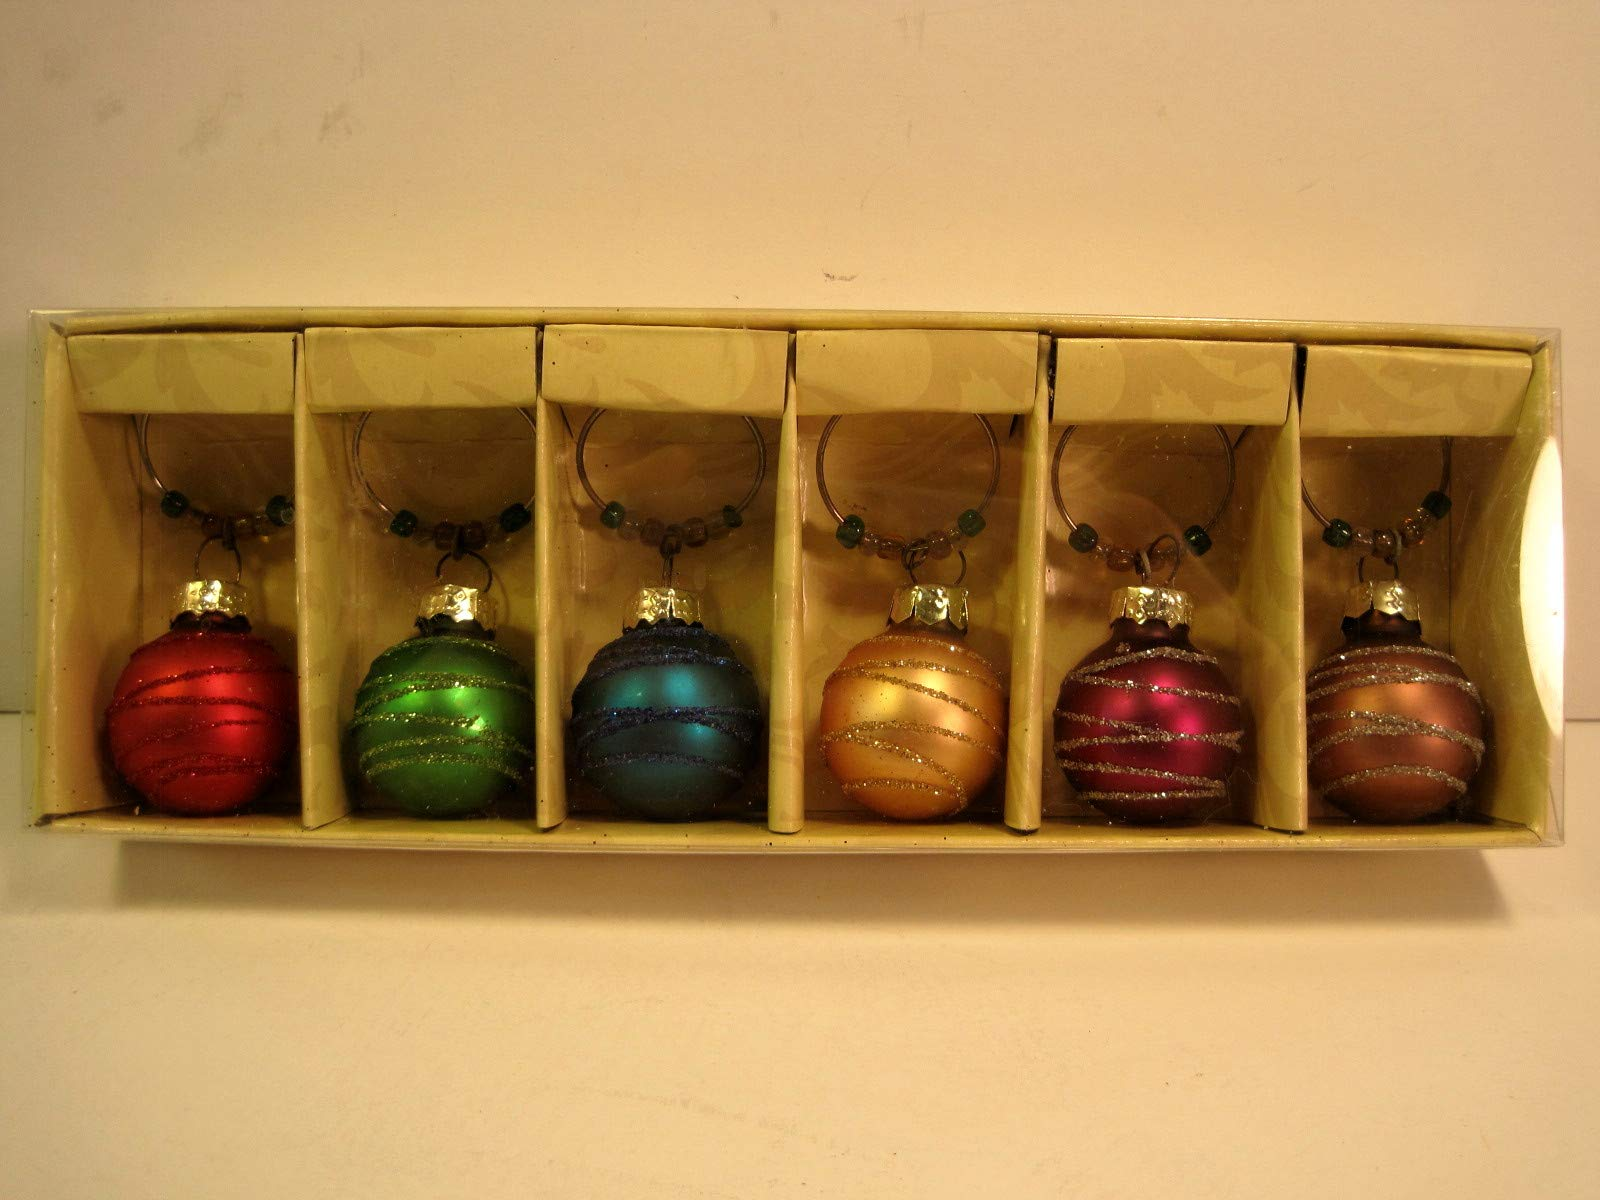 Wine Glass Charms or Markers, Christmas Ornament Themed, Set of 6 by Mango Moon